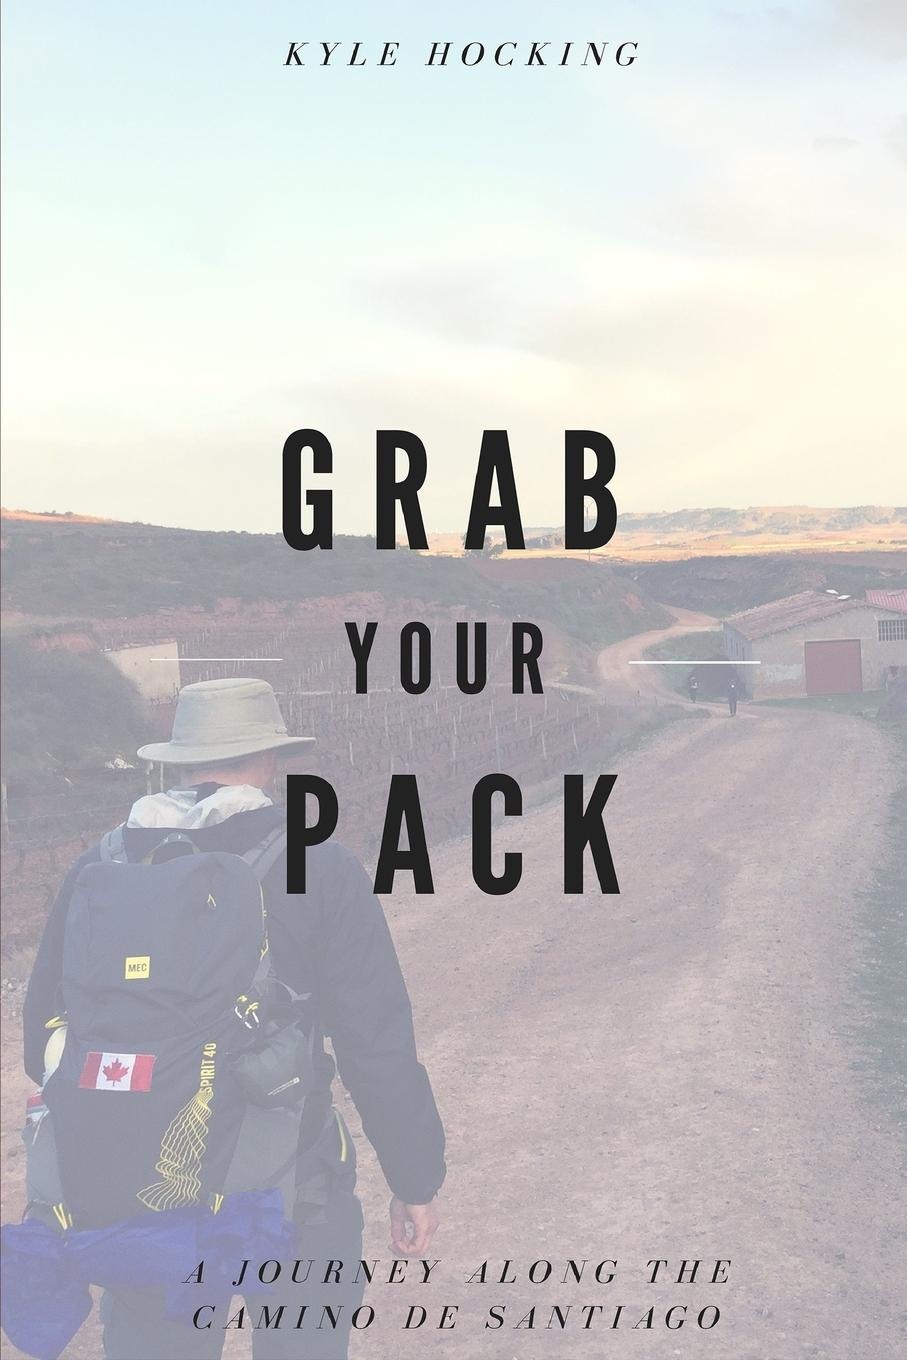 Kyle Hocking Grab Your Pack. A Journey Along the Camino de Santiago